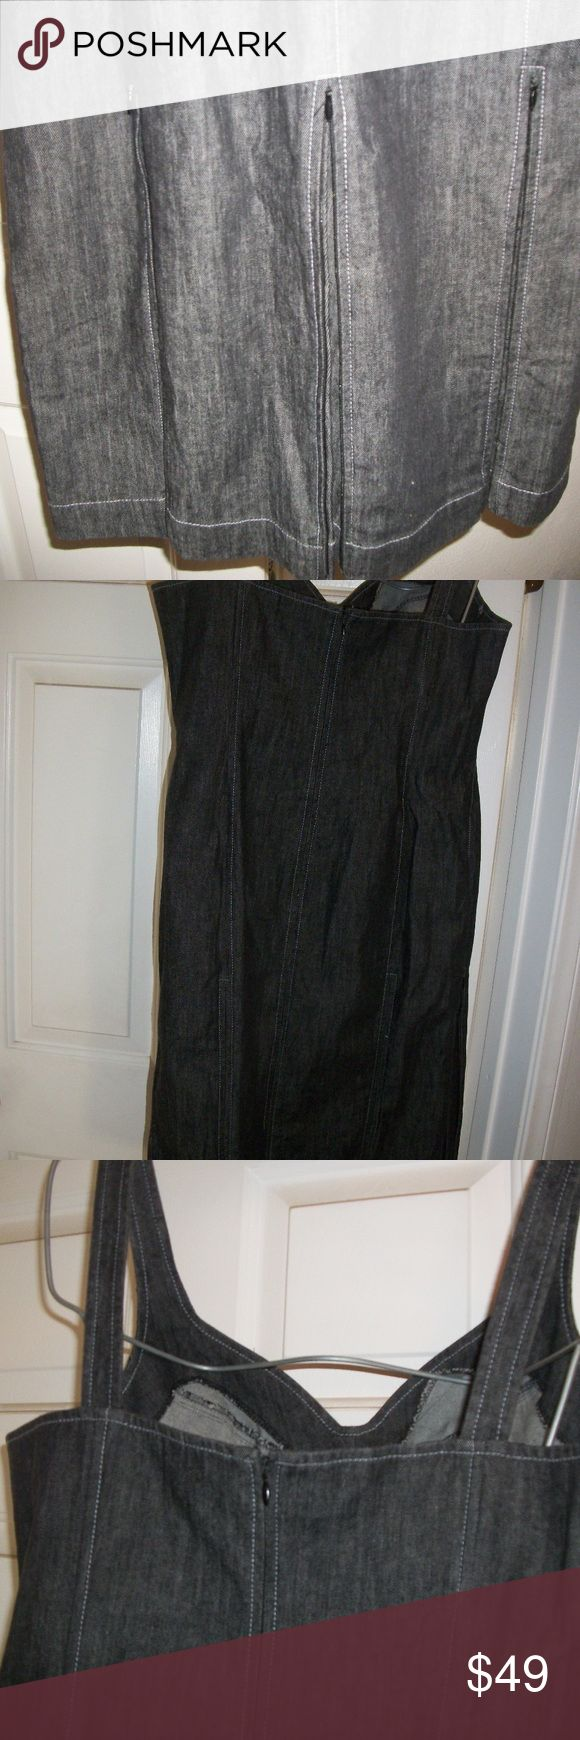 Randolph Duke Zipper Jean  Dress Hello, and thank you for stopping through to look at this Beautiful HSN Randolph Duke Women's Size16 Special/Party Suprise Detail Zipper Jean Dress. Condition is New with tags. Gorgeous Jean Blue color, light in weight. Full invisible zipper on the back with full skirt.. Very cute! Material is Cotton and Spandex.. Please ask any questions.. Comes from a smoke and pet free home - even though we Luv pets:) Thank you! Blessings~ Randolph Duke Jeans Flare & Wide…